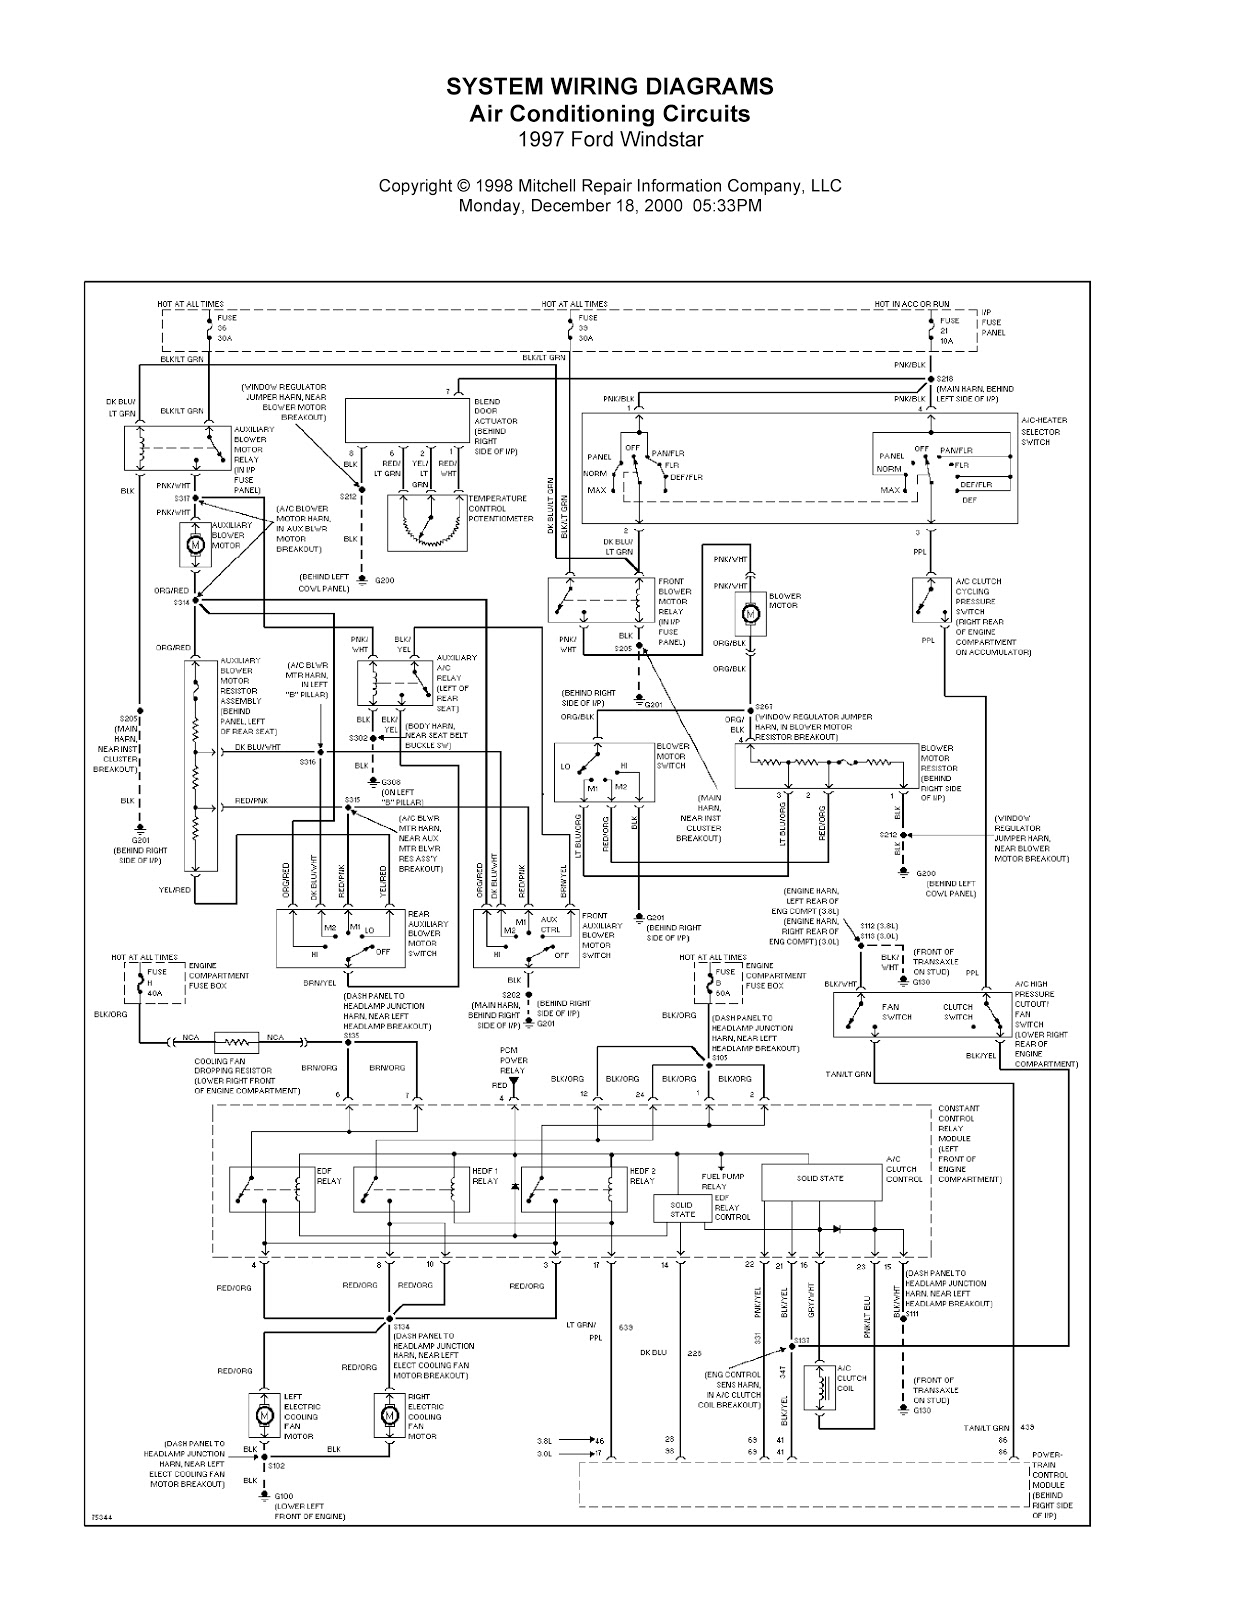 0001 2000 ford windstar wiring diagram ford windstar 3 8 engine diagram 1996 ford windstar fuse box diagram at eliteediting.co